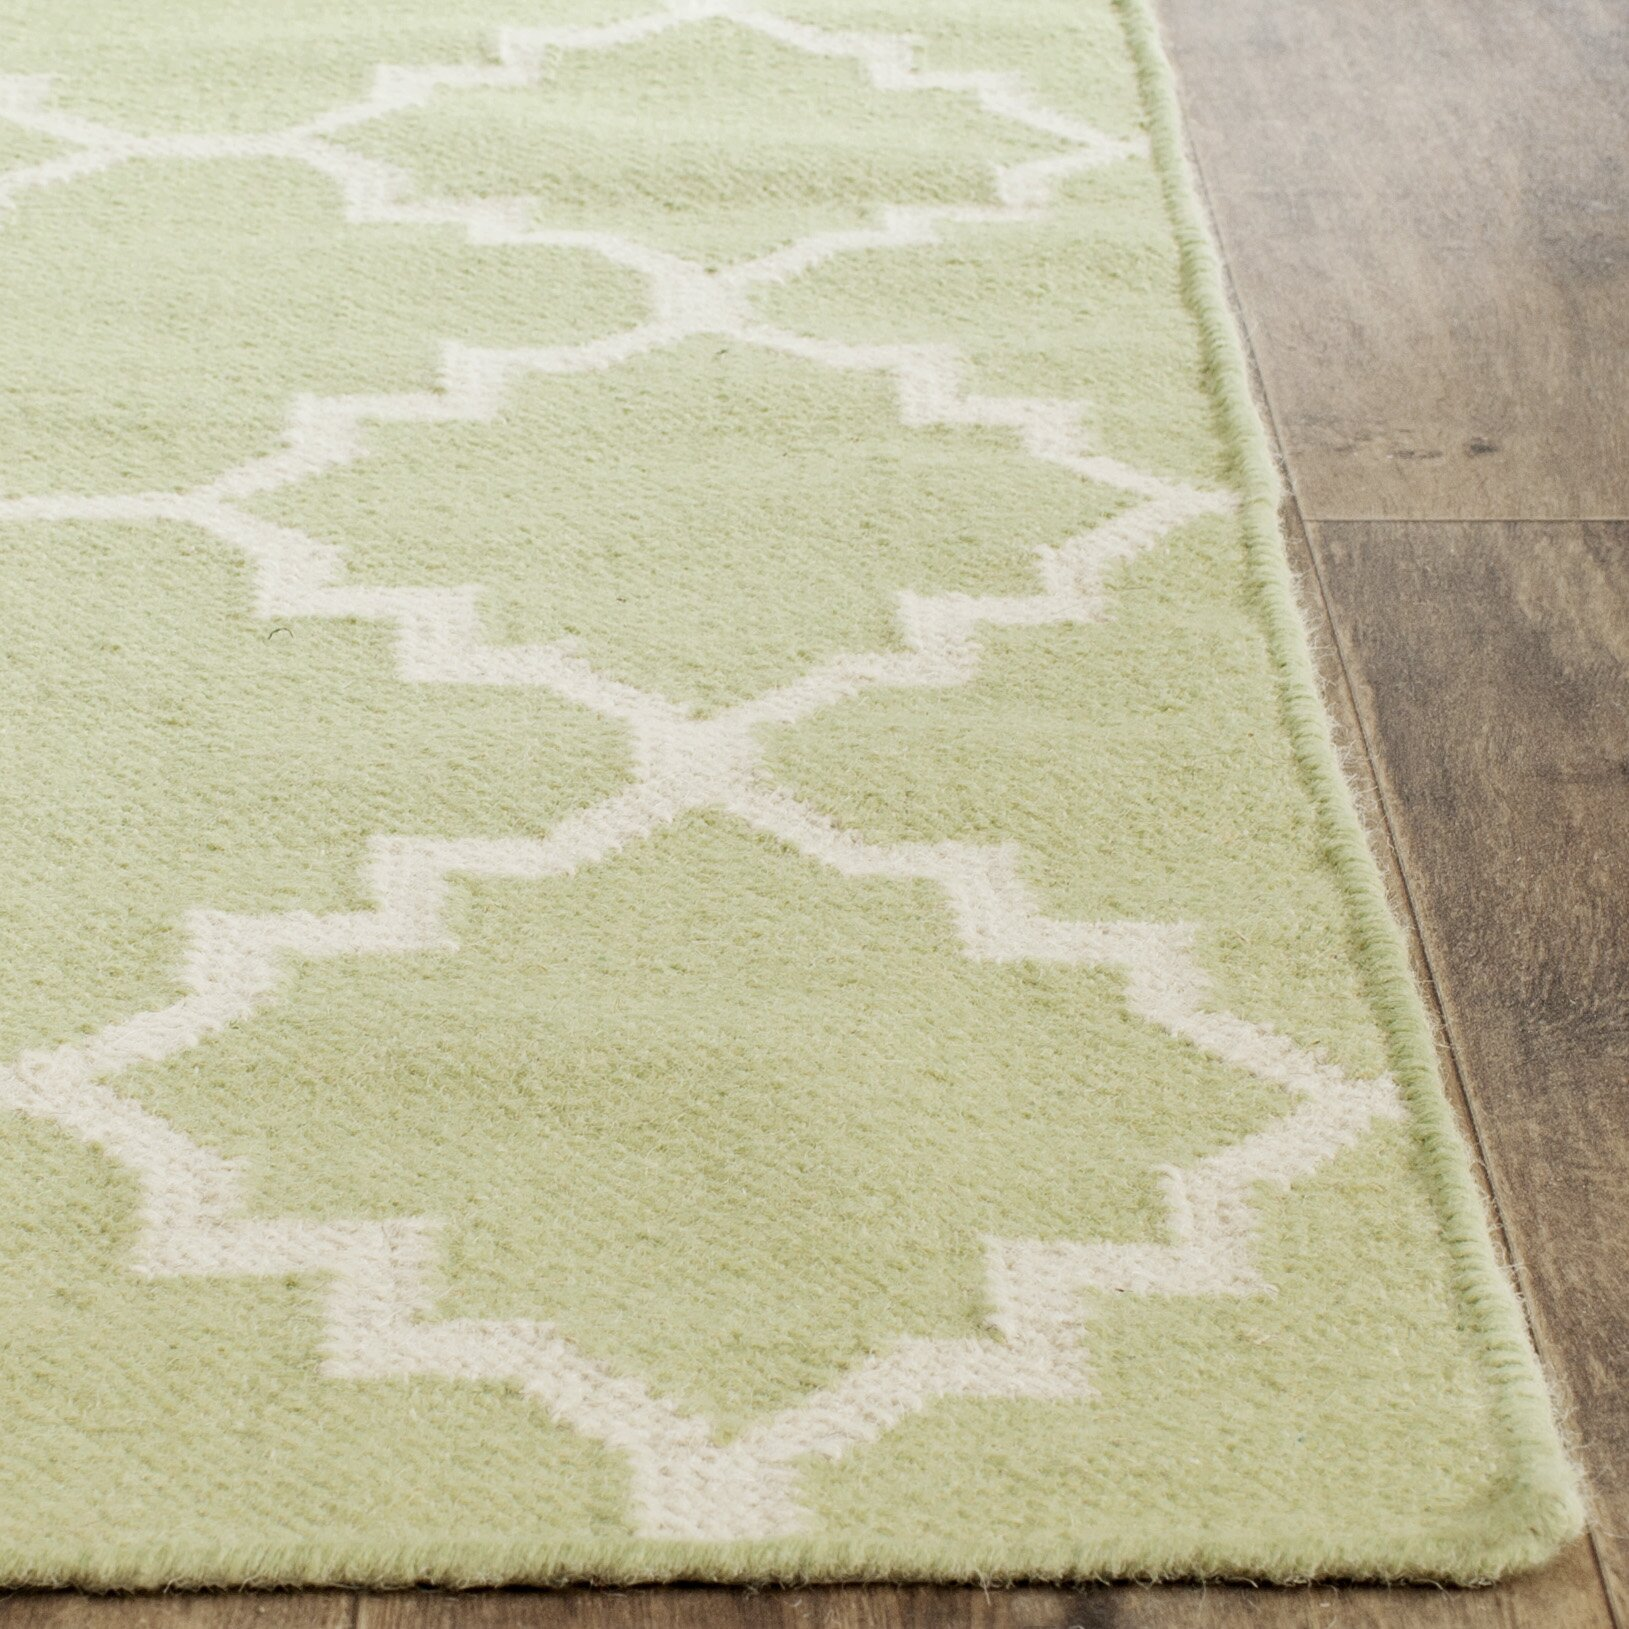 Safavieh Dhurrie Hand Woven Light Green Ivory Area Rug